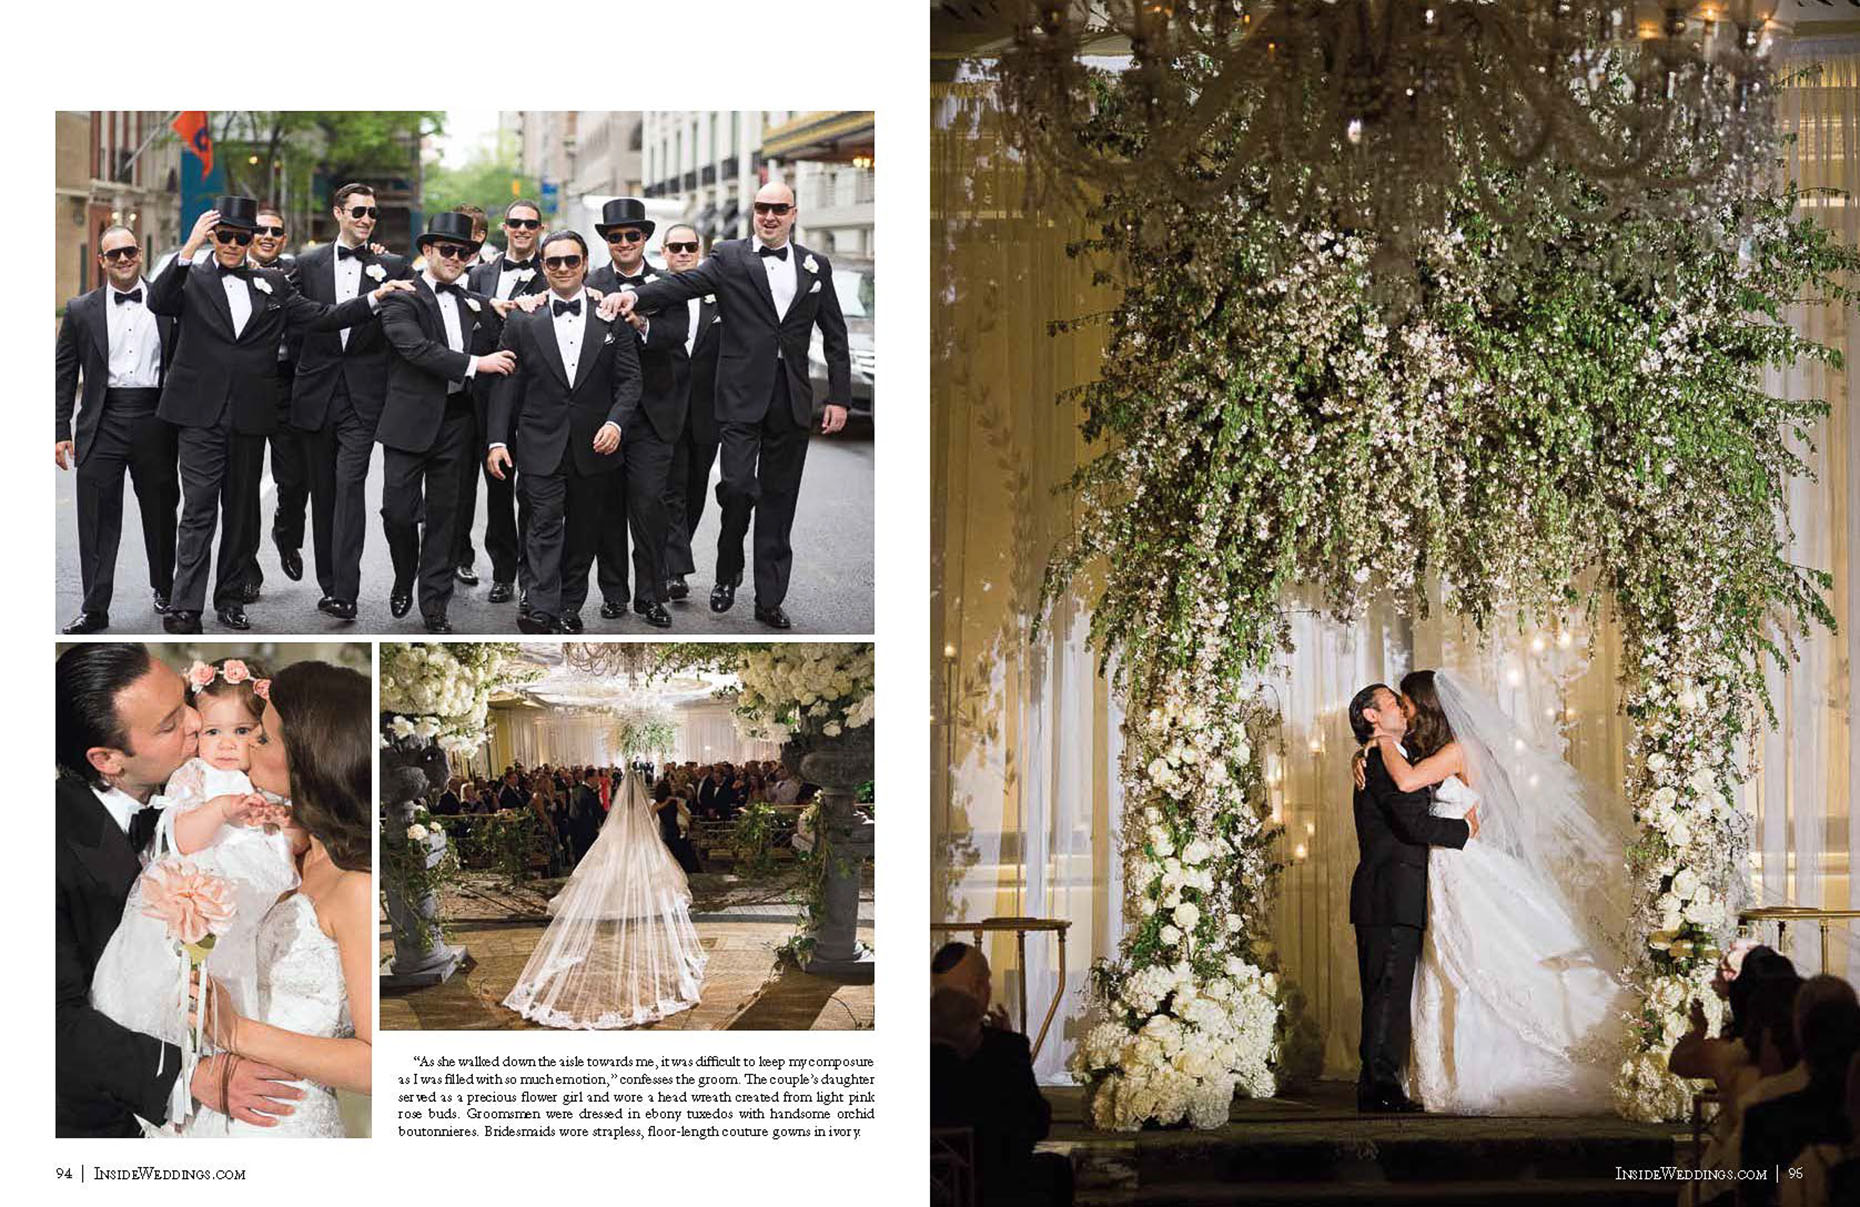 008_InsideWeddings_spread3_spring2014